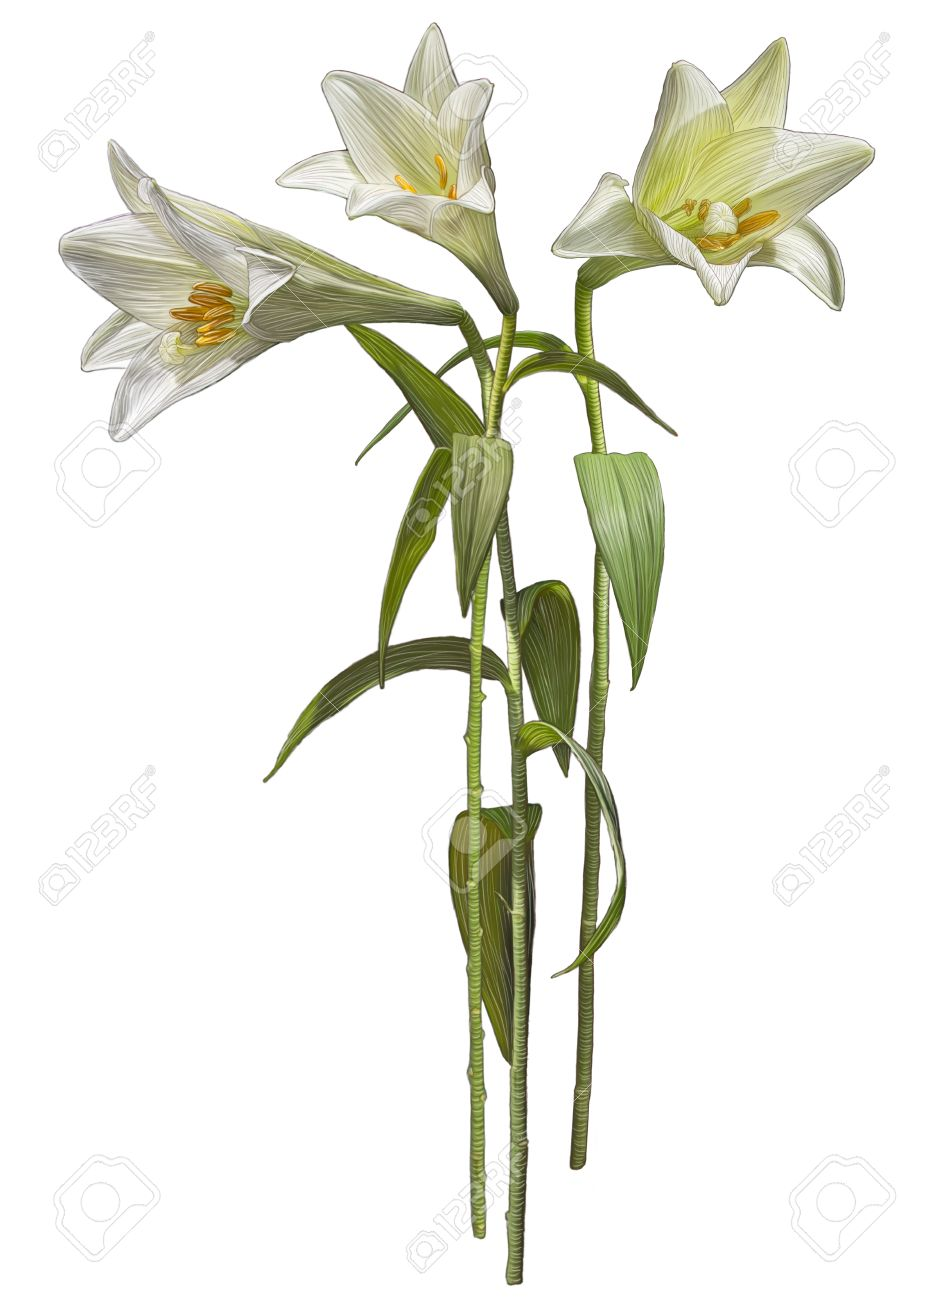 Drawing Of White Madonna Lily Flowers Isolated On White Background